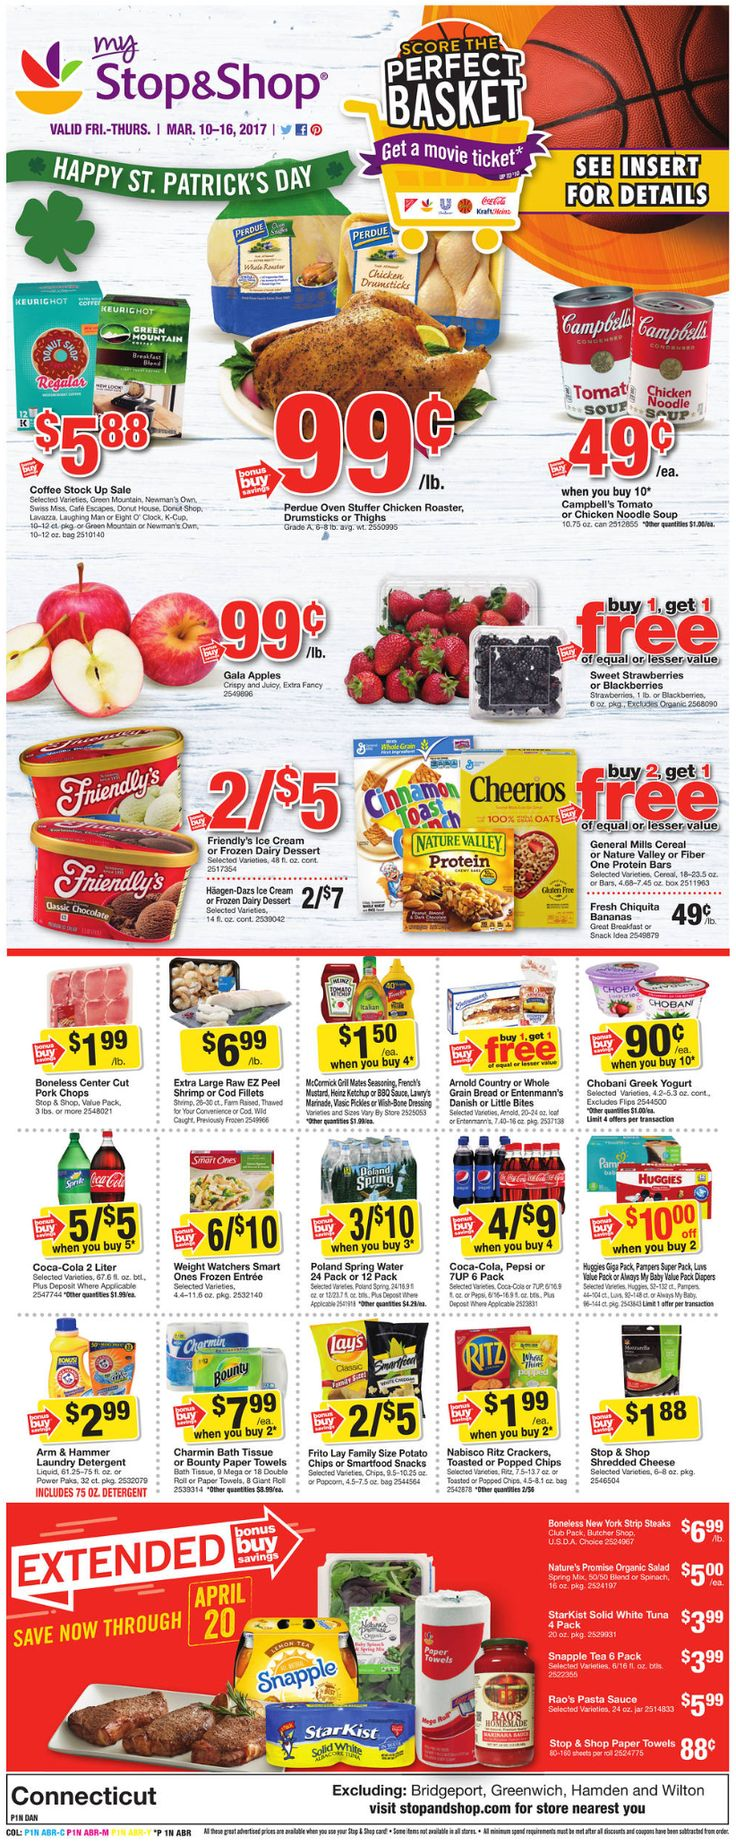 Stop and Shop Circular March 10 - 16, 2017 - http://www.olcatalog.com/grocery/stop-and-shop-circular.html